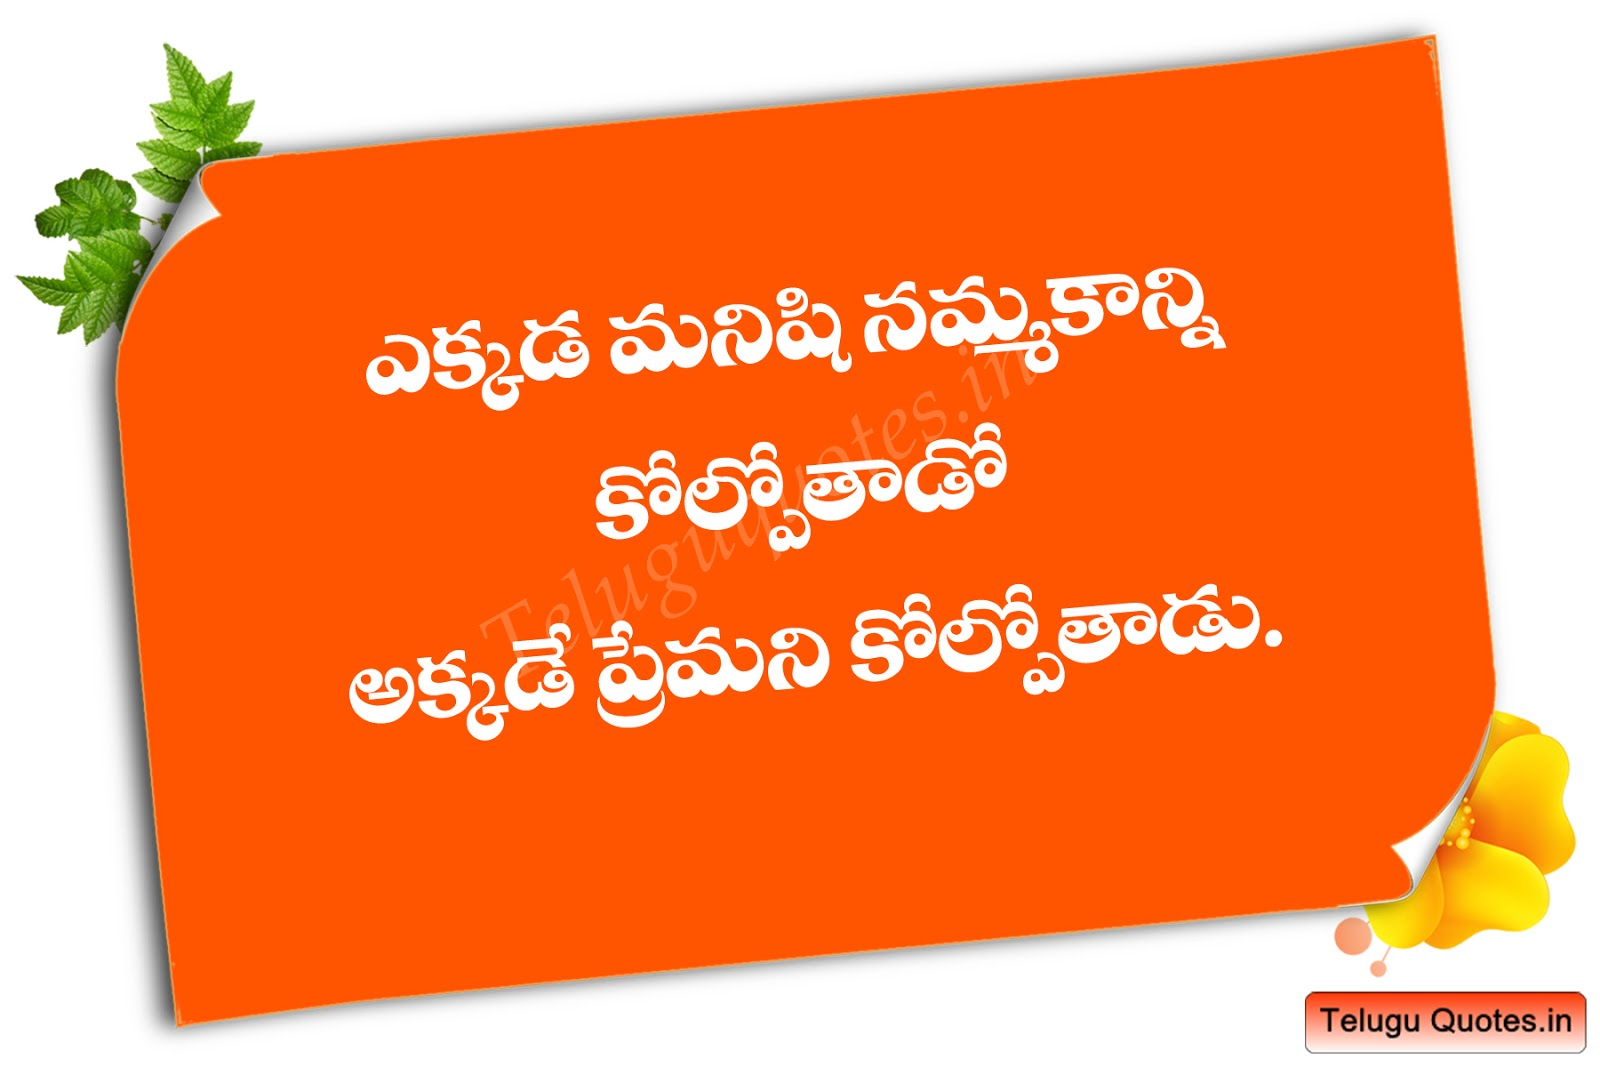 Uplifting Quotes For Life Heart Touching Inspirational Quotes In Telugu  Telugu Quotes.in